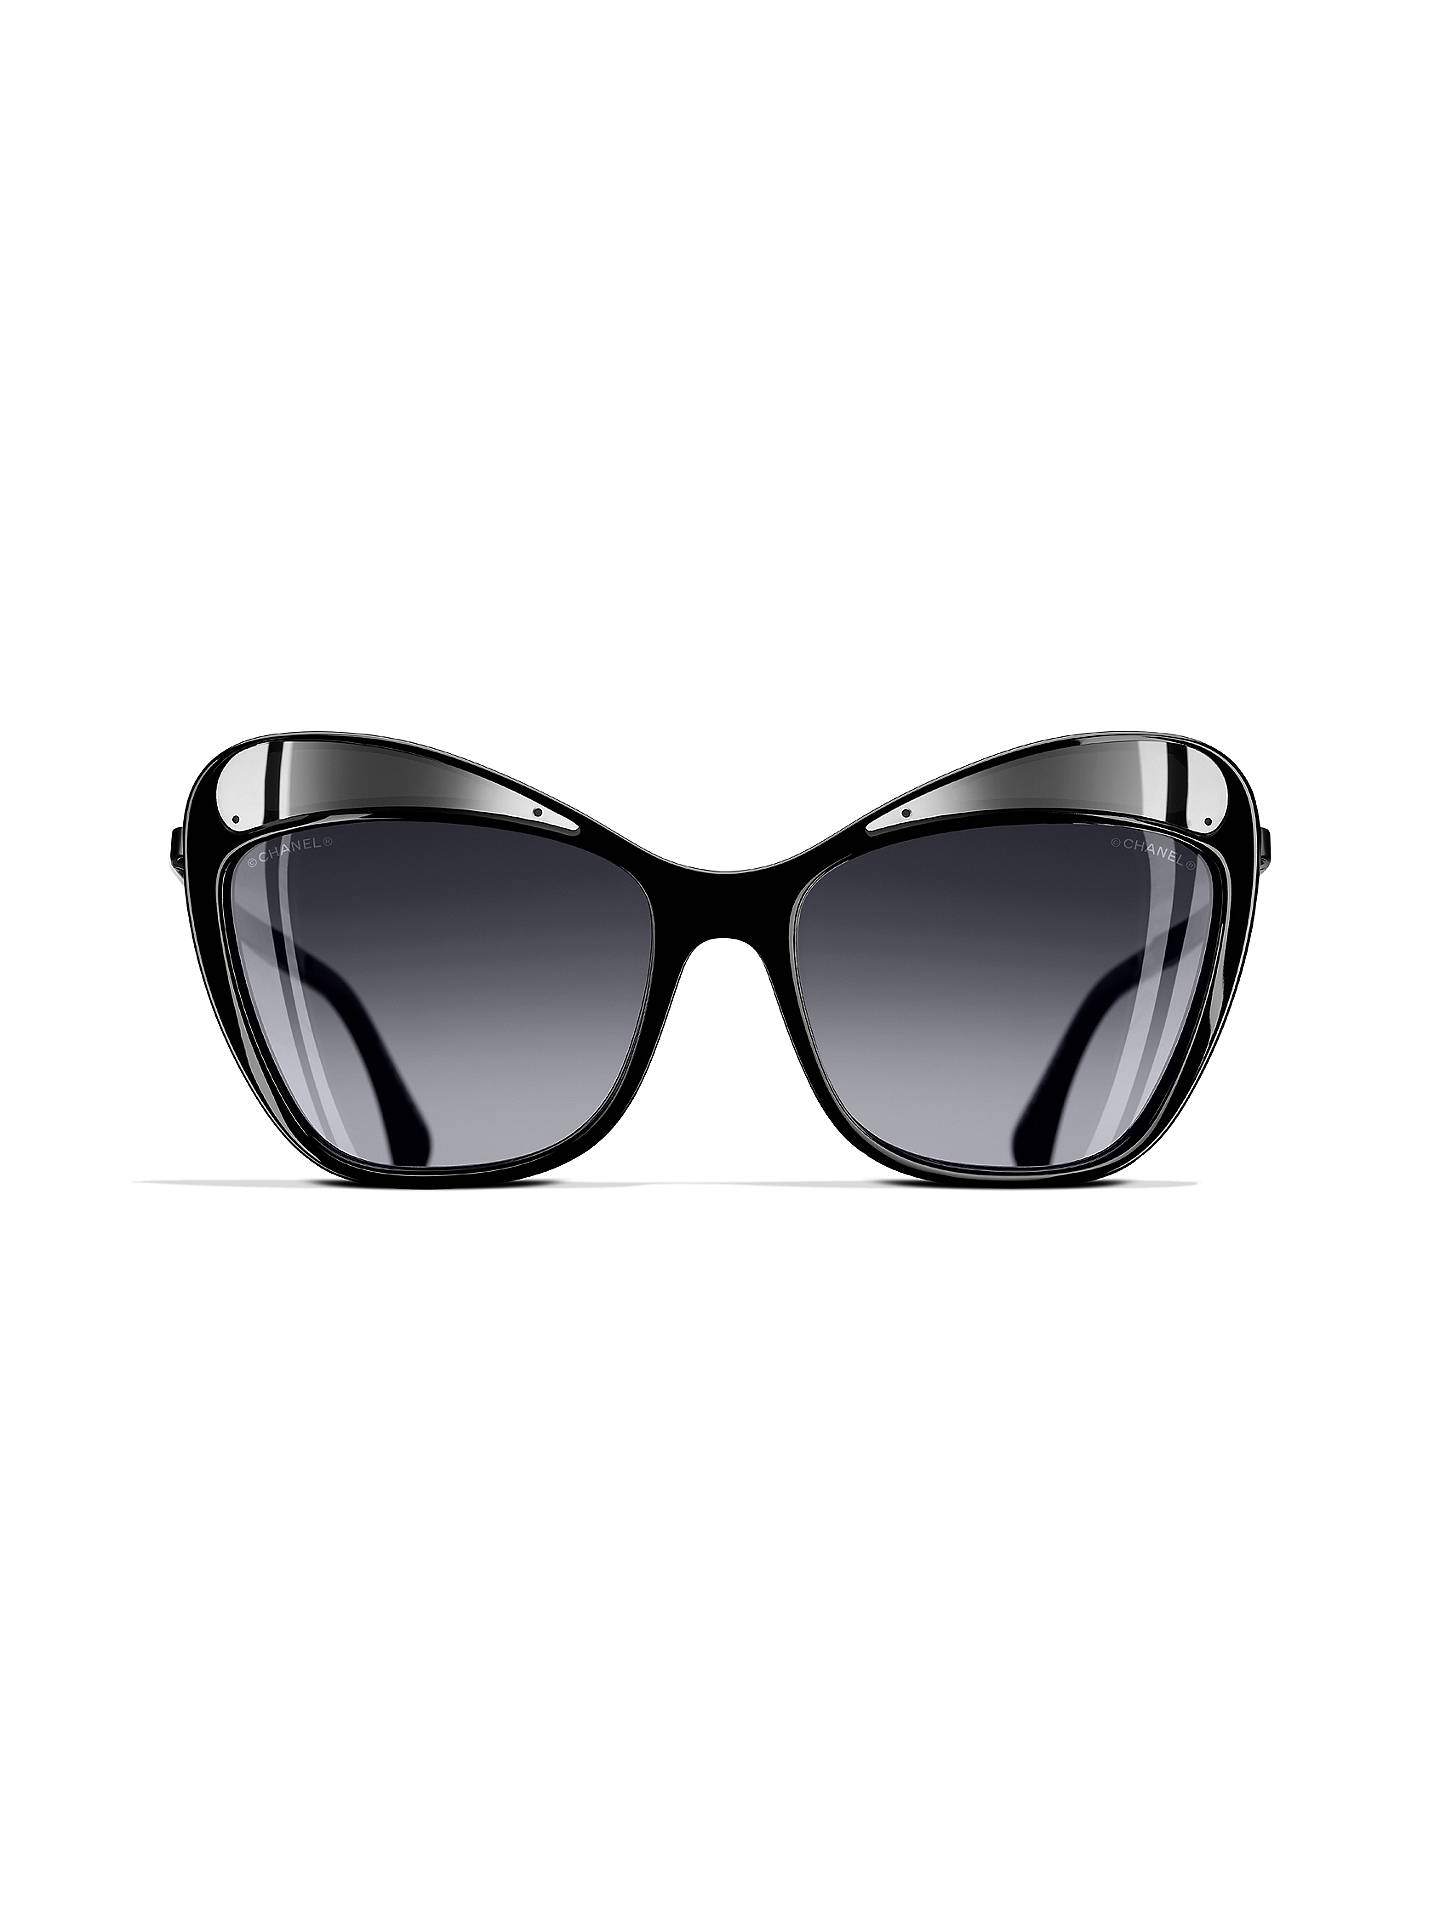 9ee4ac2f1c ... BuyCHANEL Butterfly Sunglasses CH5377 Grey Silver Online at  johnlewis.com ...